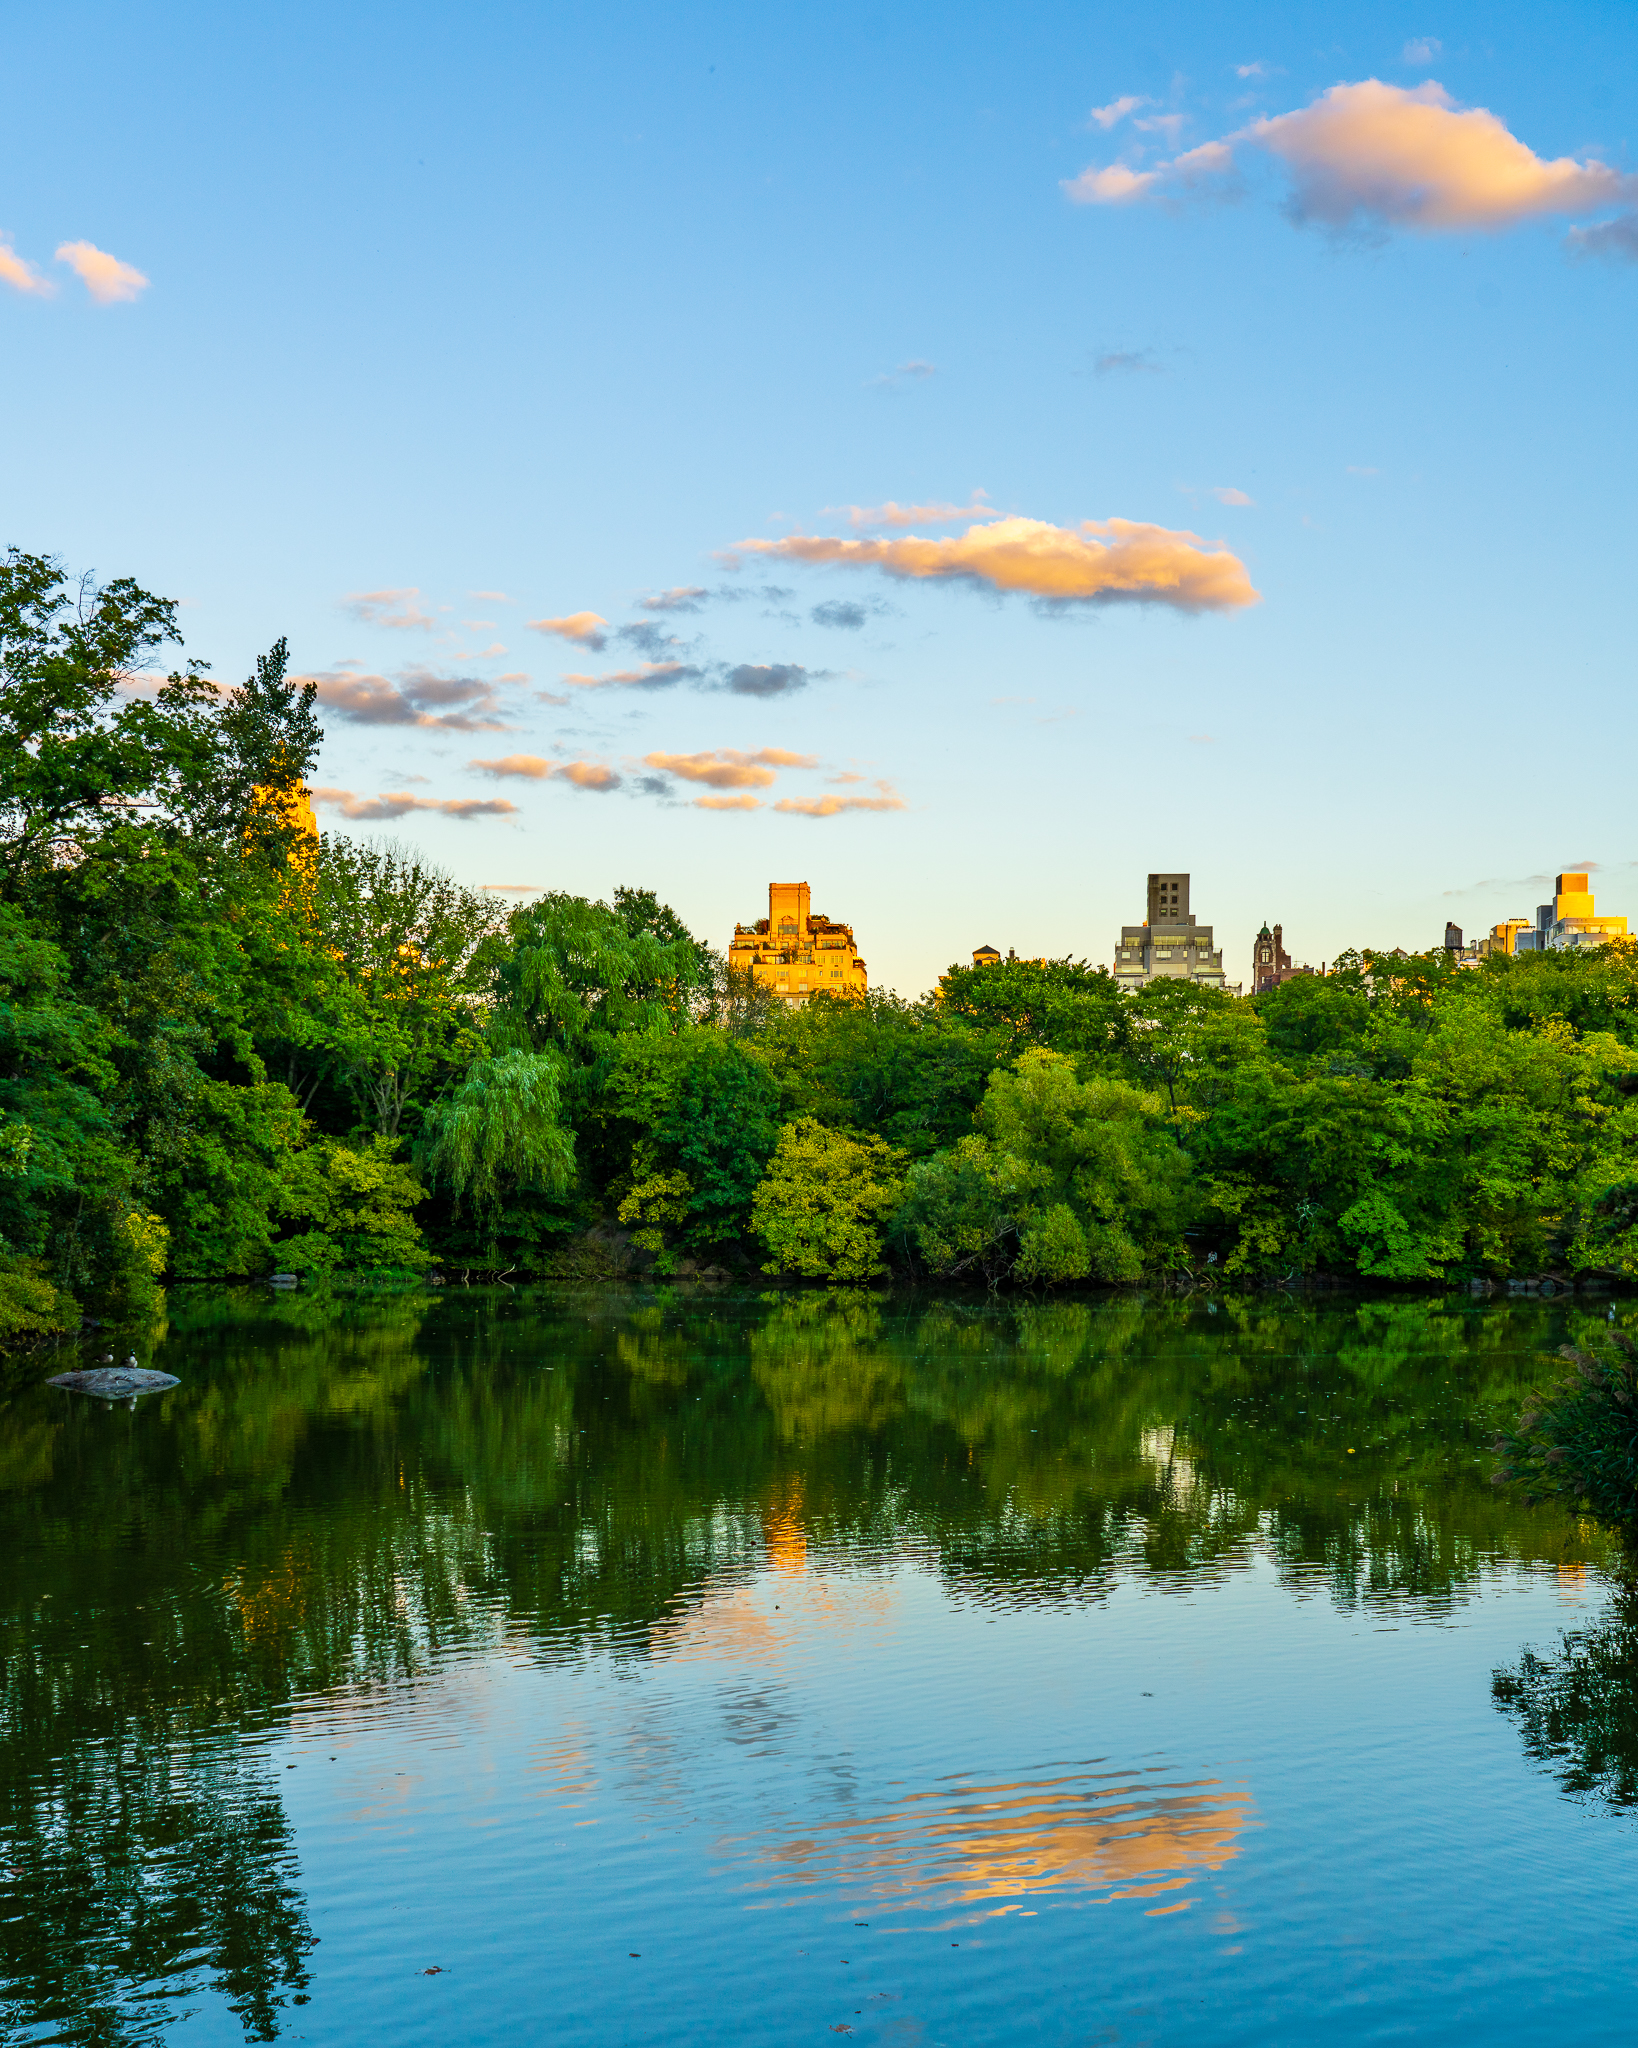 a photo of sunset colors reflecting on the lake in central park new york